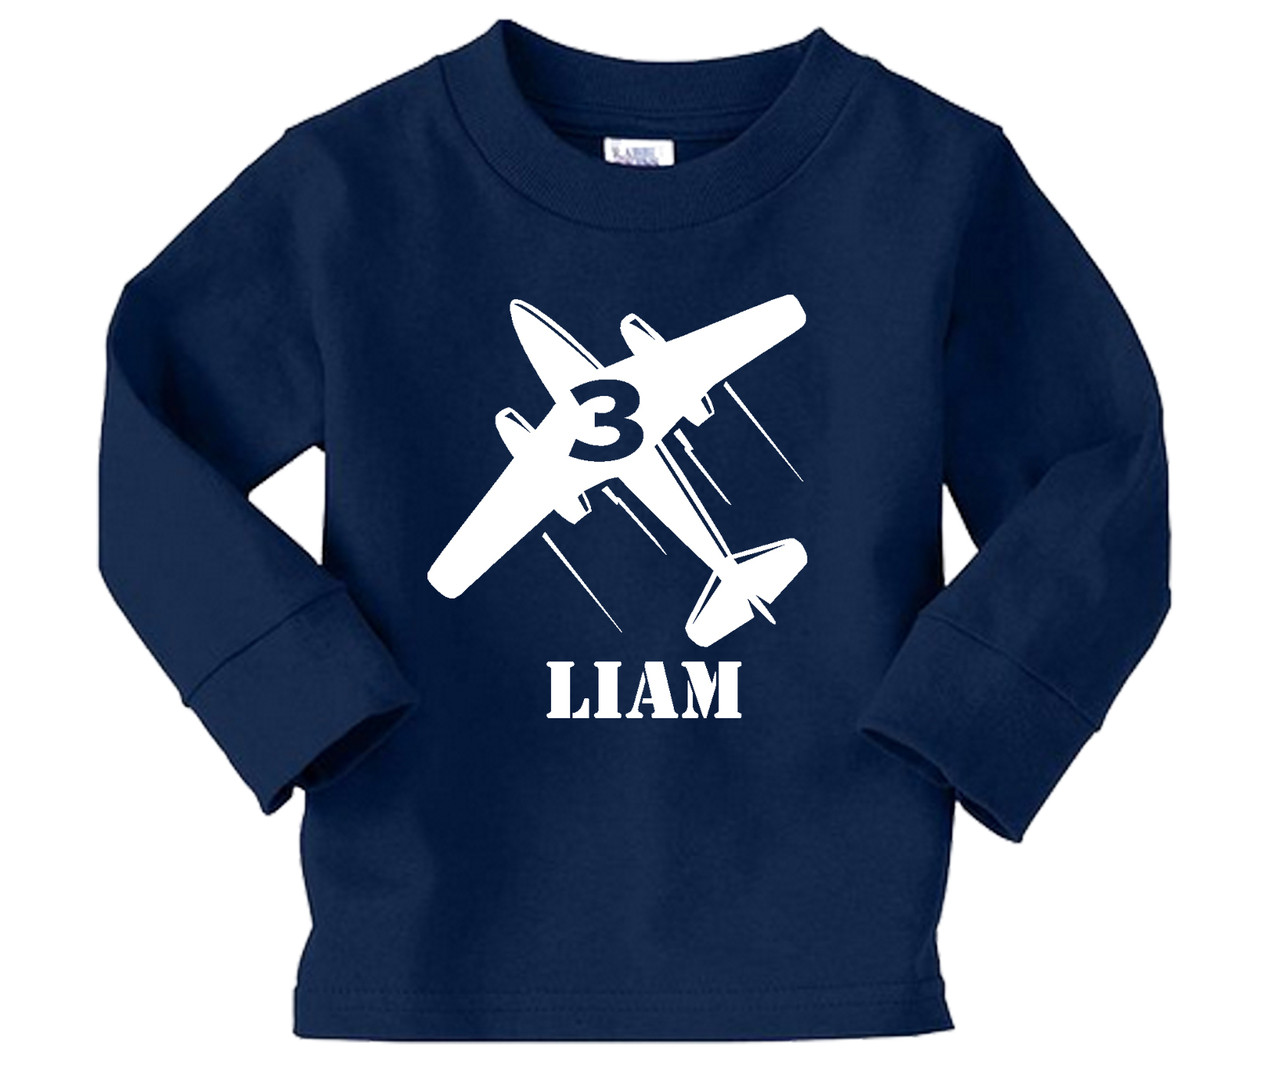 Airplane personalized long sleeve birthday on navy blue tee